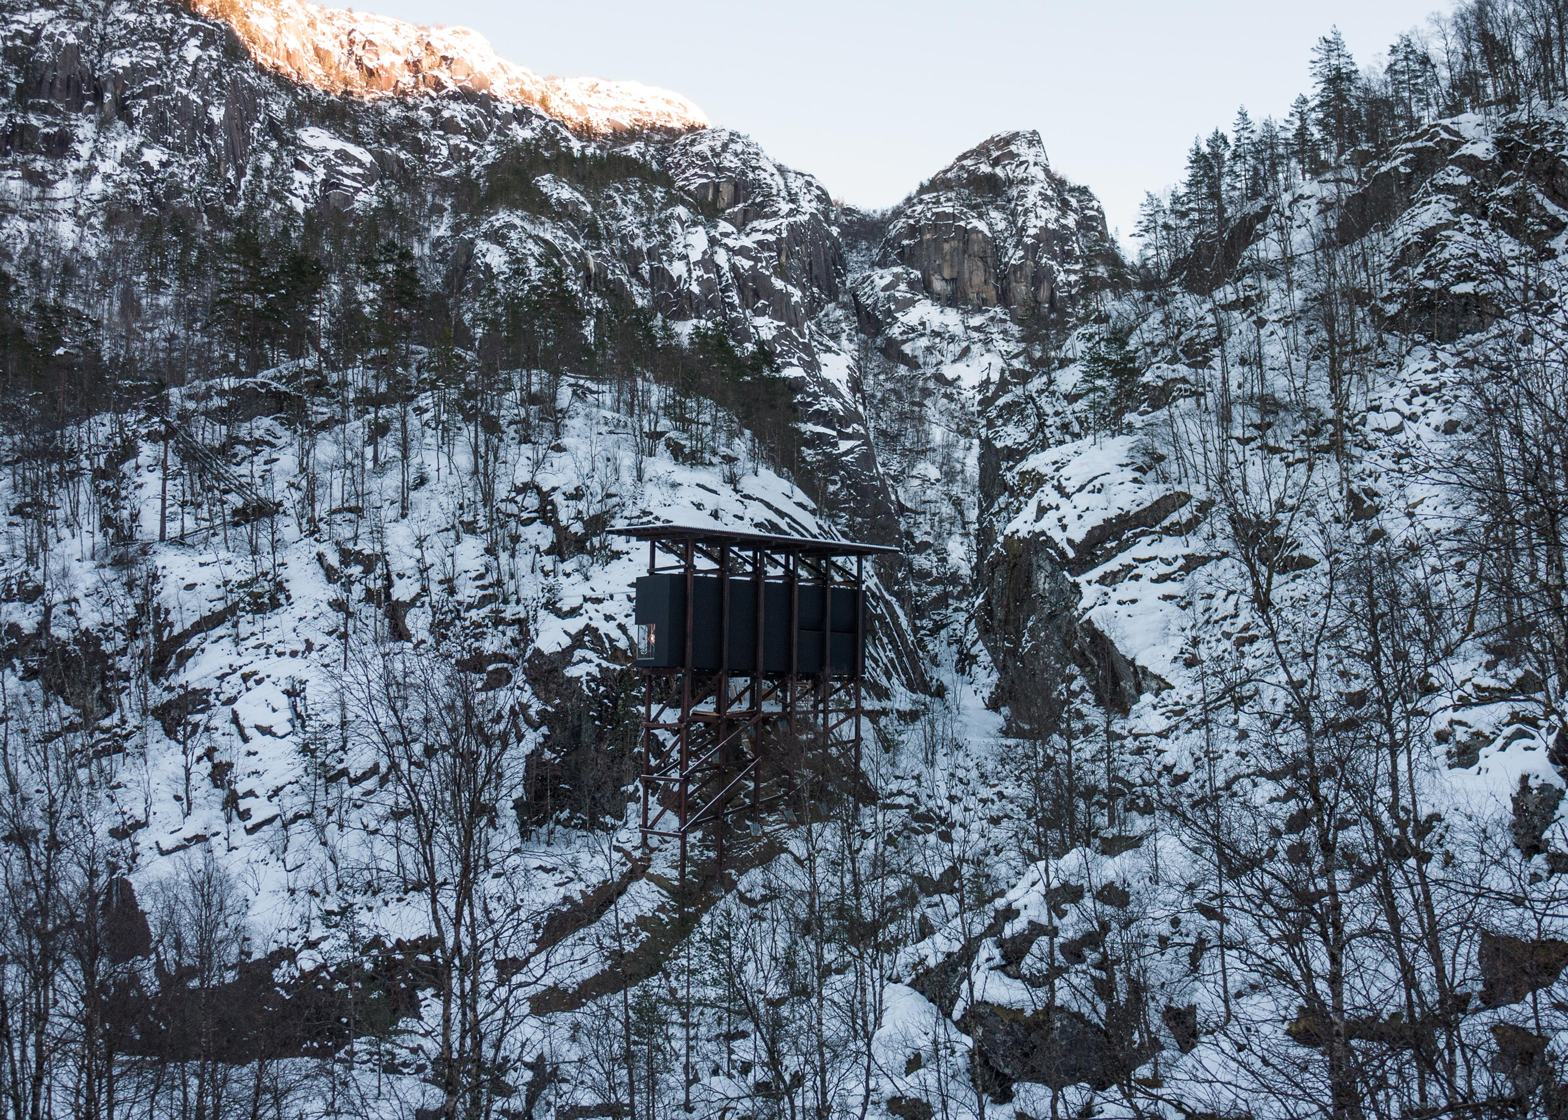 Allmannajuvet tourist route pavilion in Norway by Peter Zumthor. Photograph by Jan Andresen